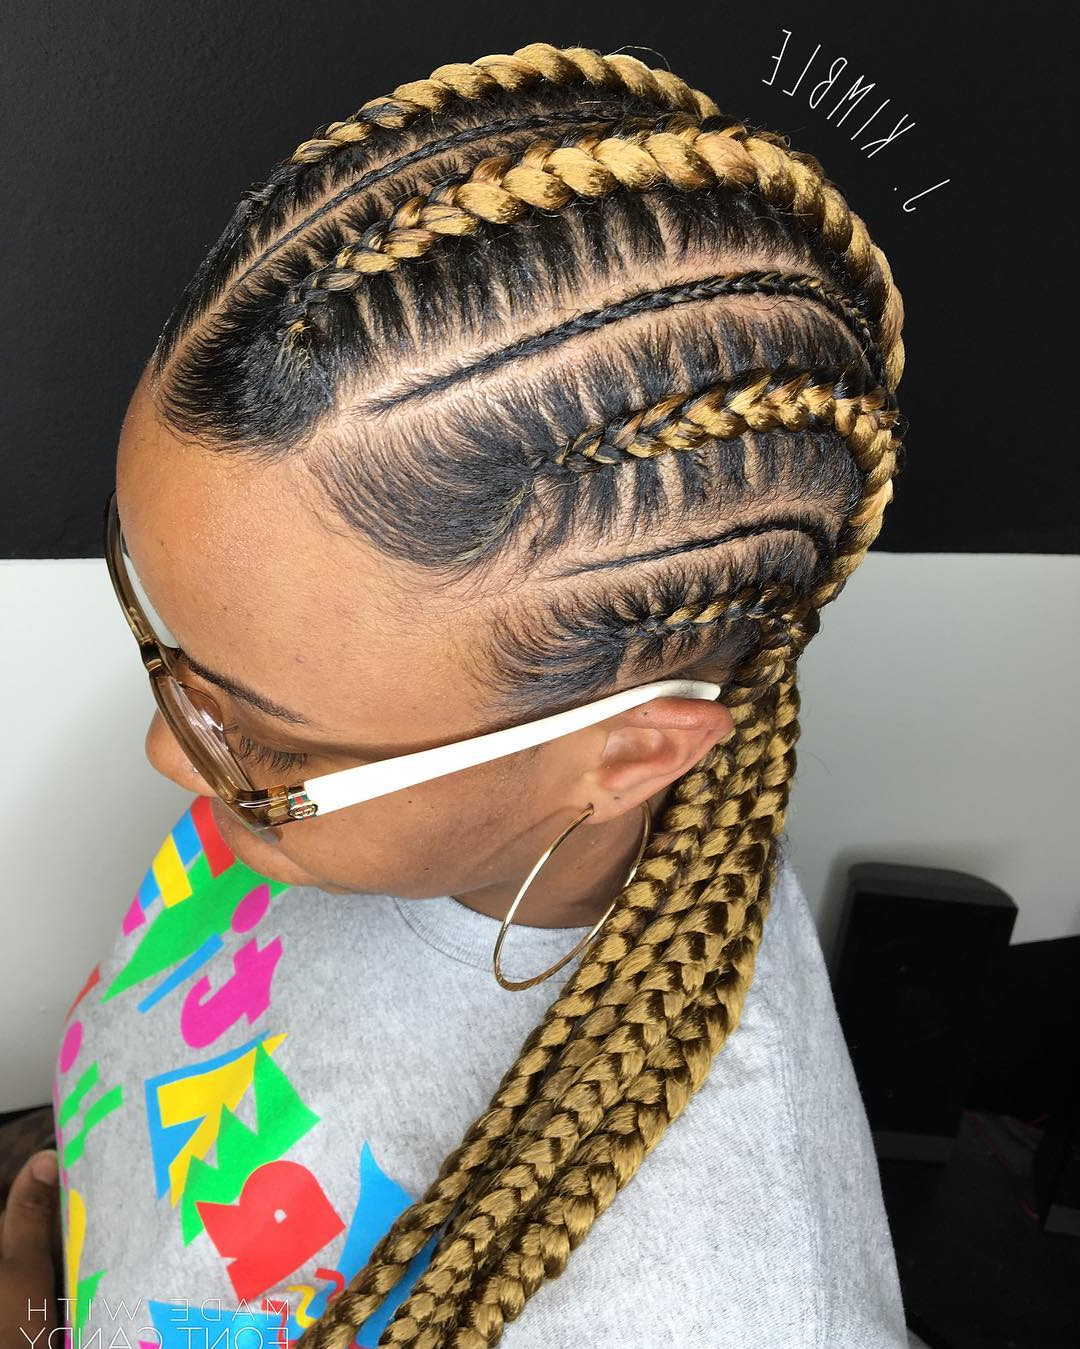 Preferred Geometric Blonde Cornrows Braided Hairstyles With 70 Best Black Braided Hairstyles That Turn Heads In (View 10 of 20)